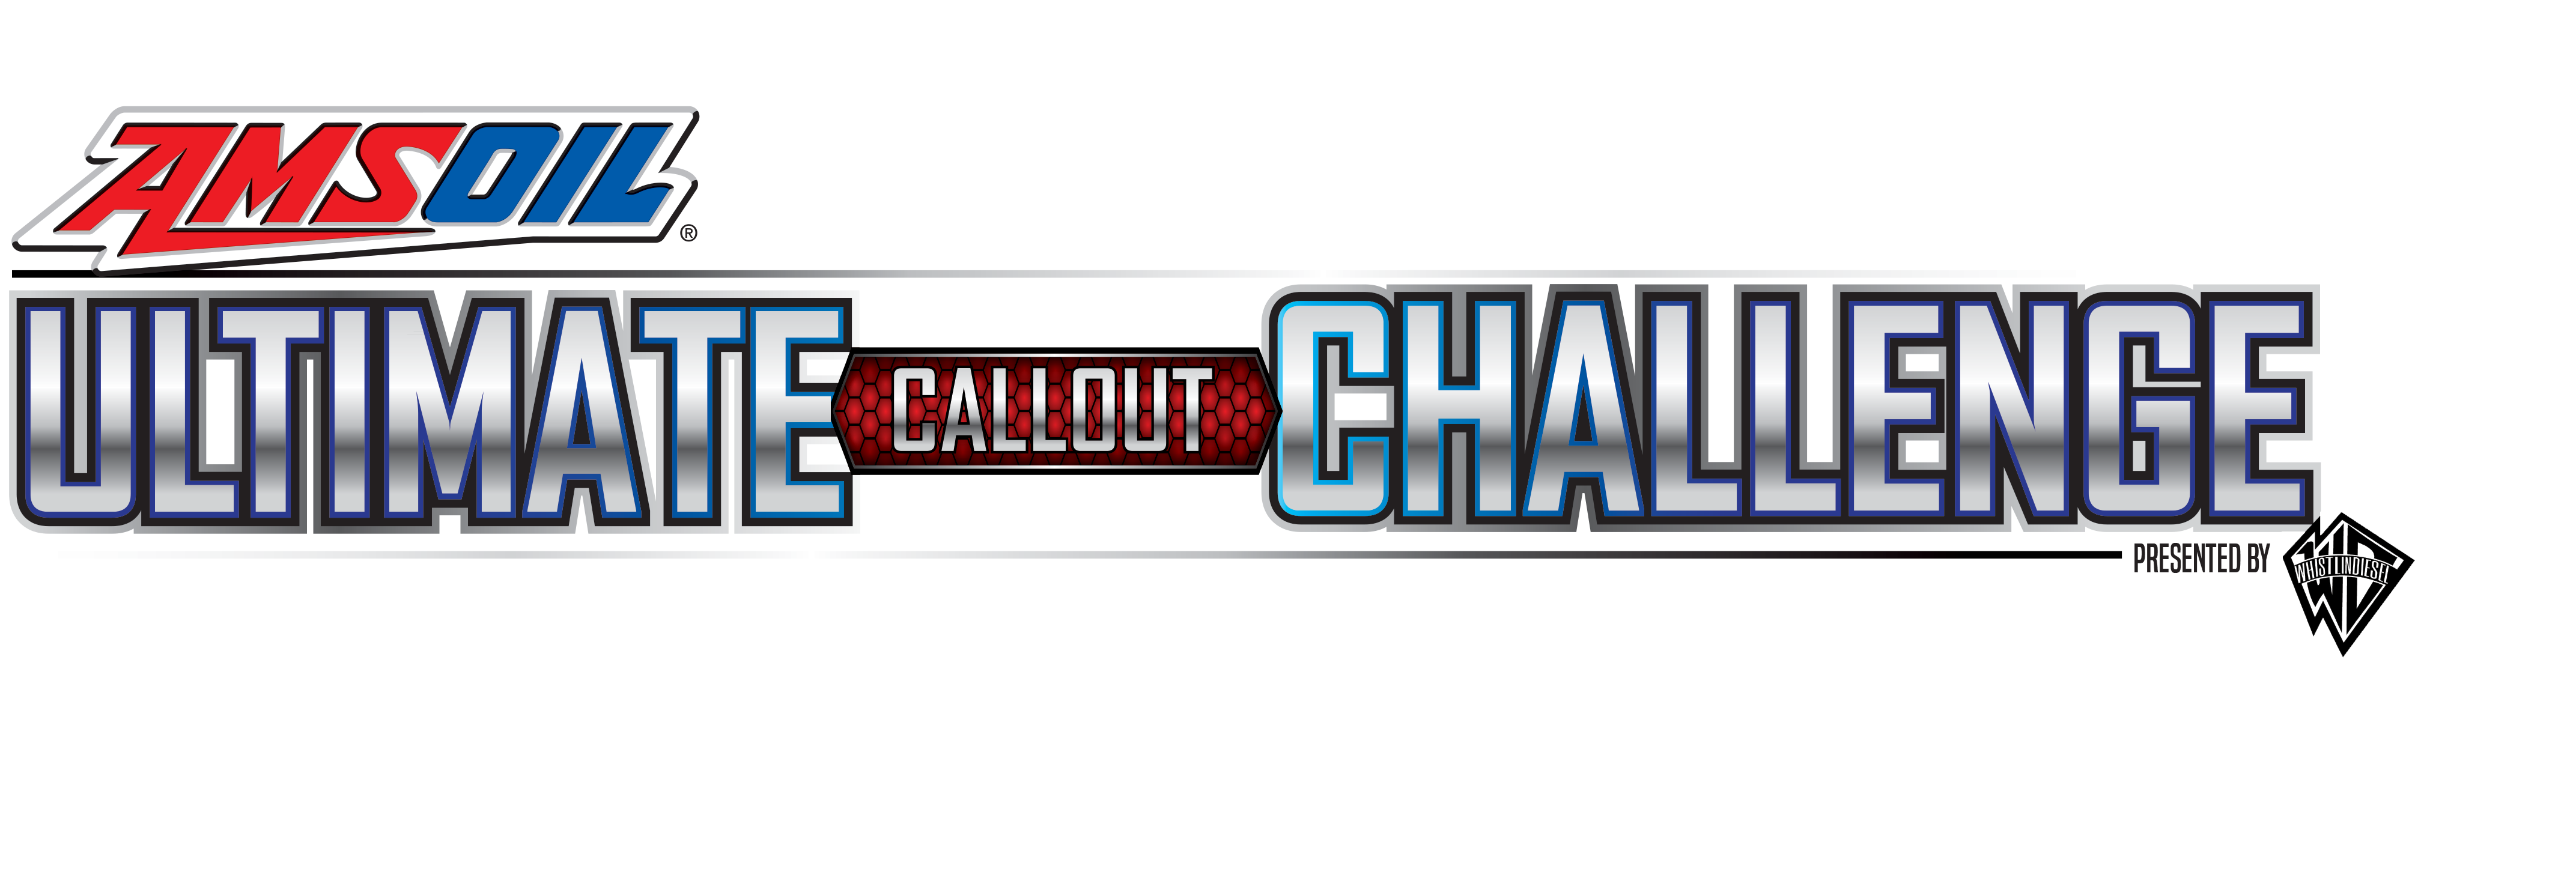 2019 UCC Results | Ultimate Callout Challenge